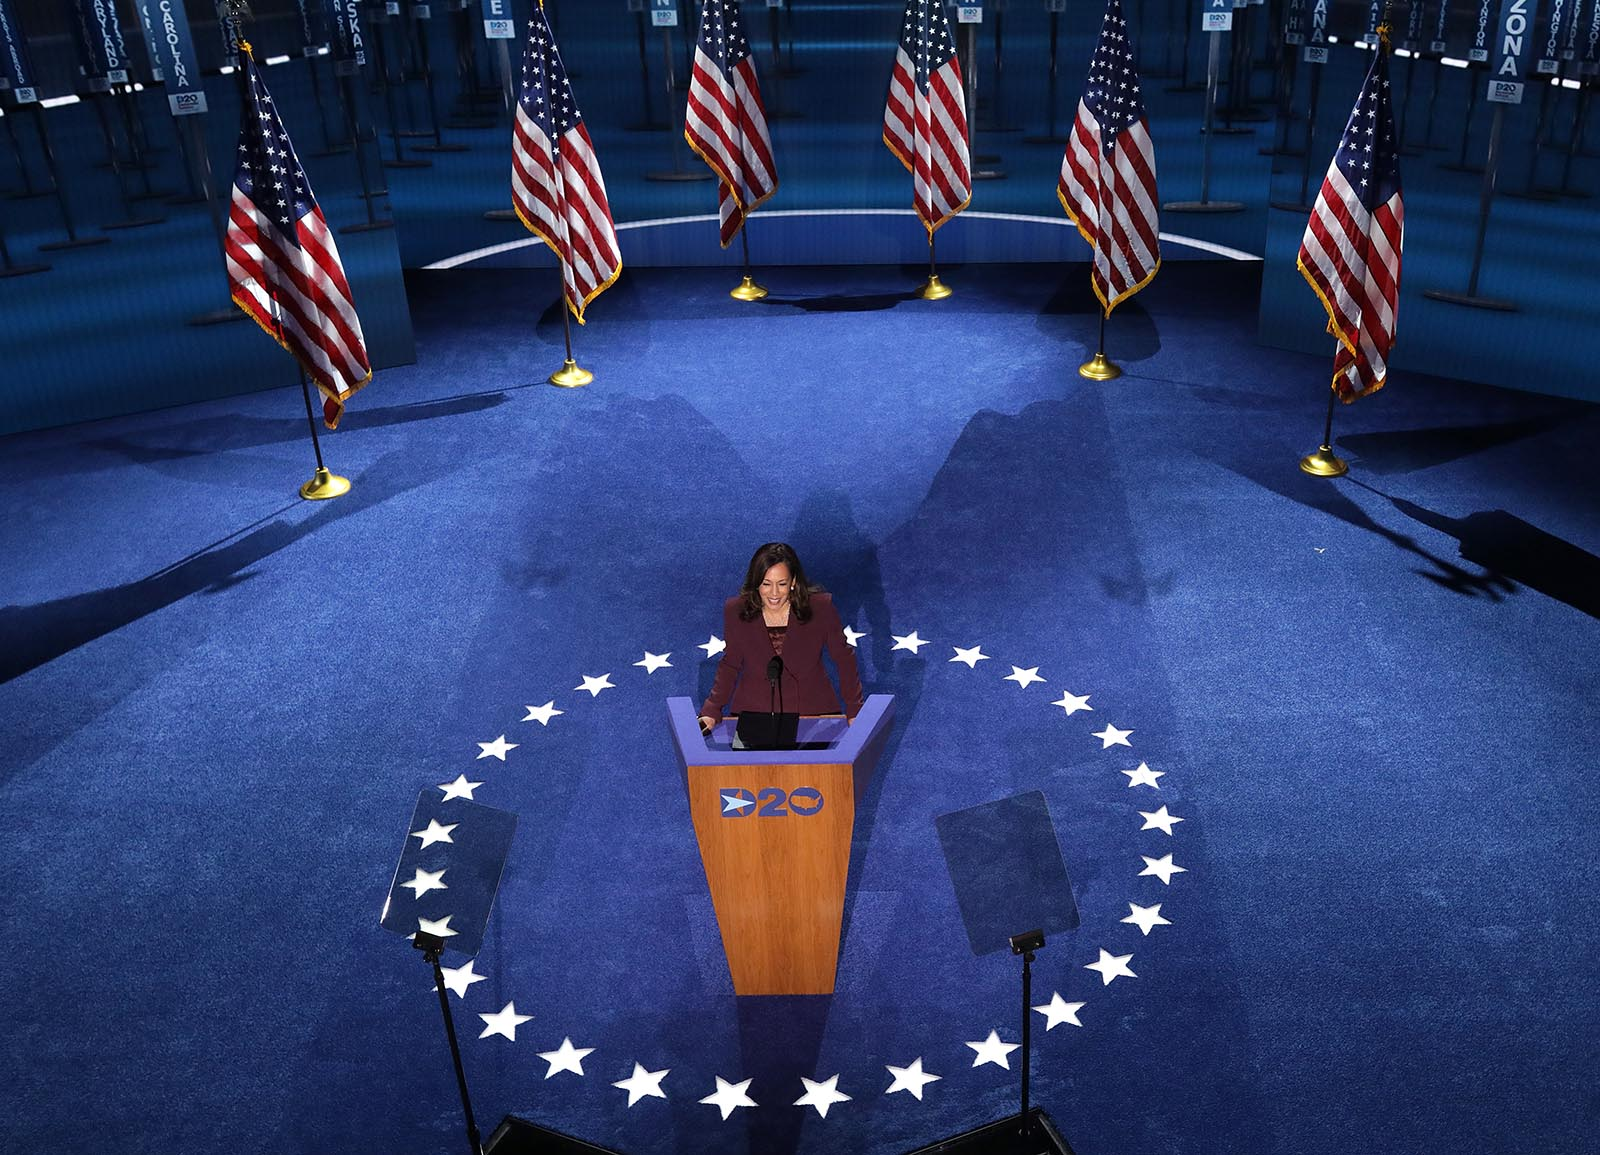 Sen. Kamala Harris speaks at the Democratic National Convention on Wednesday, August 19.